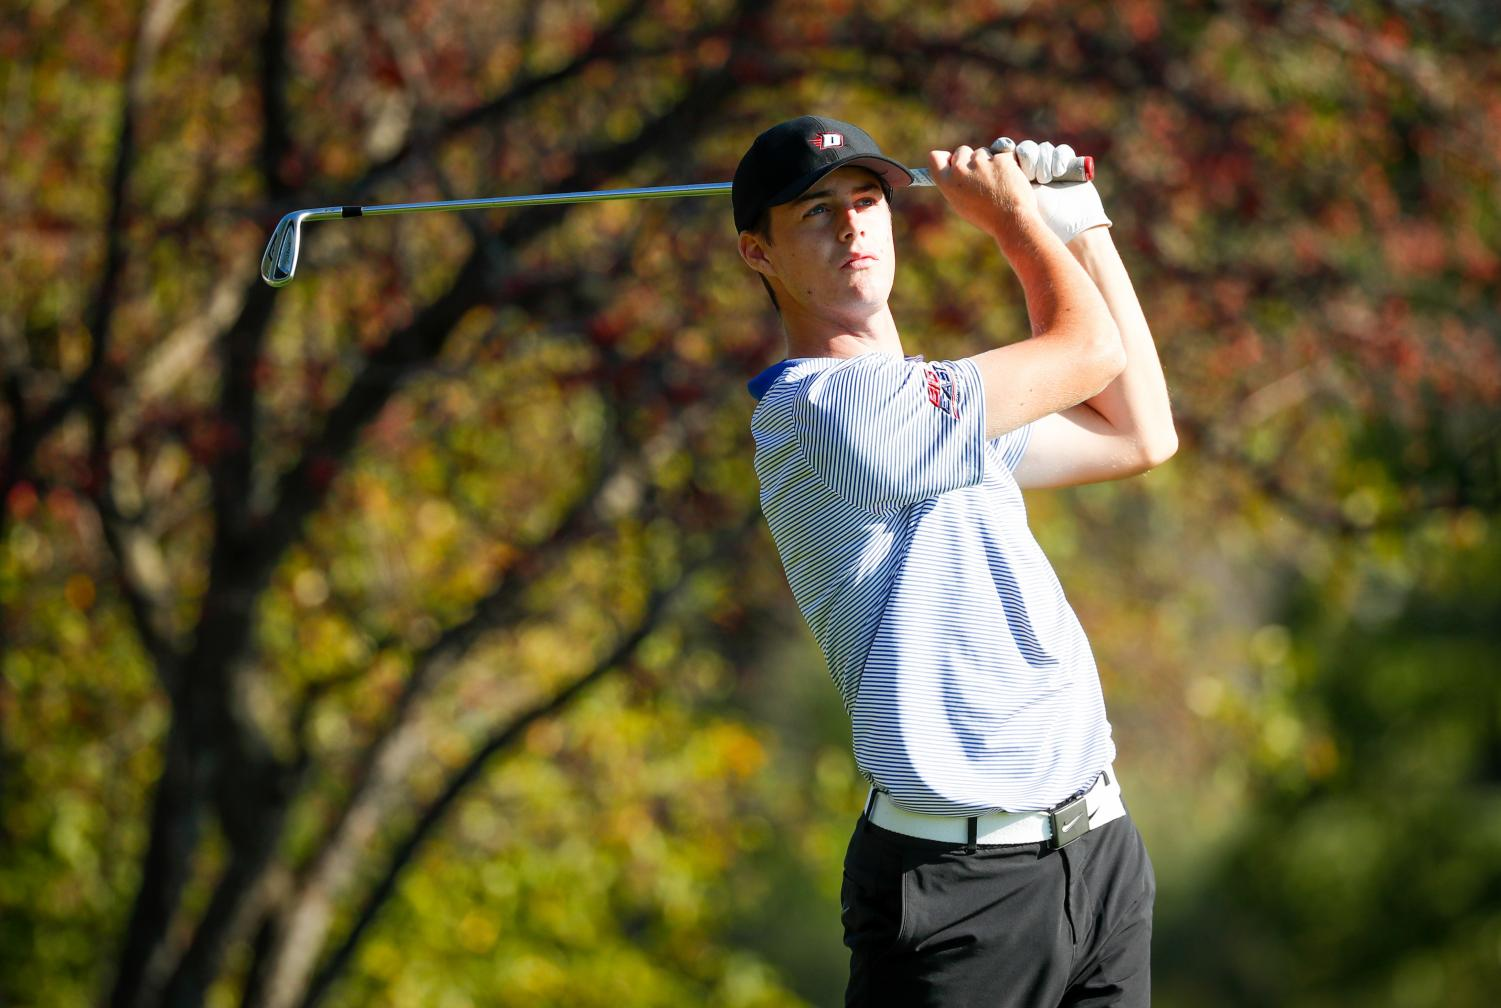 Freshman Joey McCarthy said he's learned a lot over the course of his freshman year at DePaul. He finish T-8 at Callawassie.